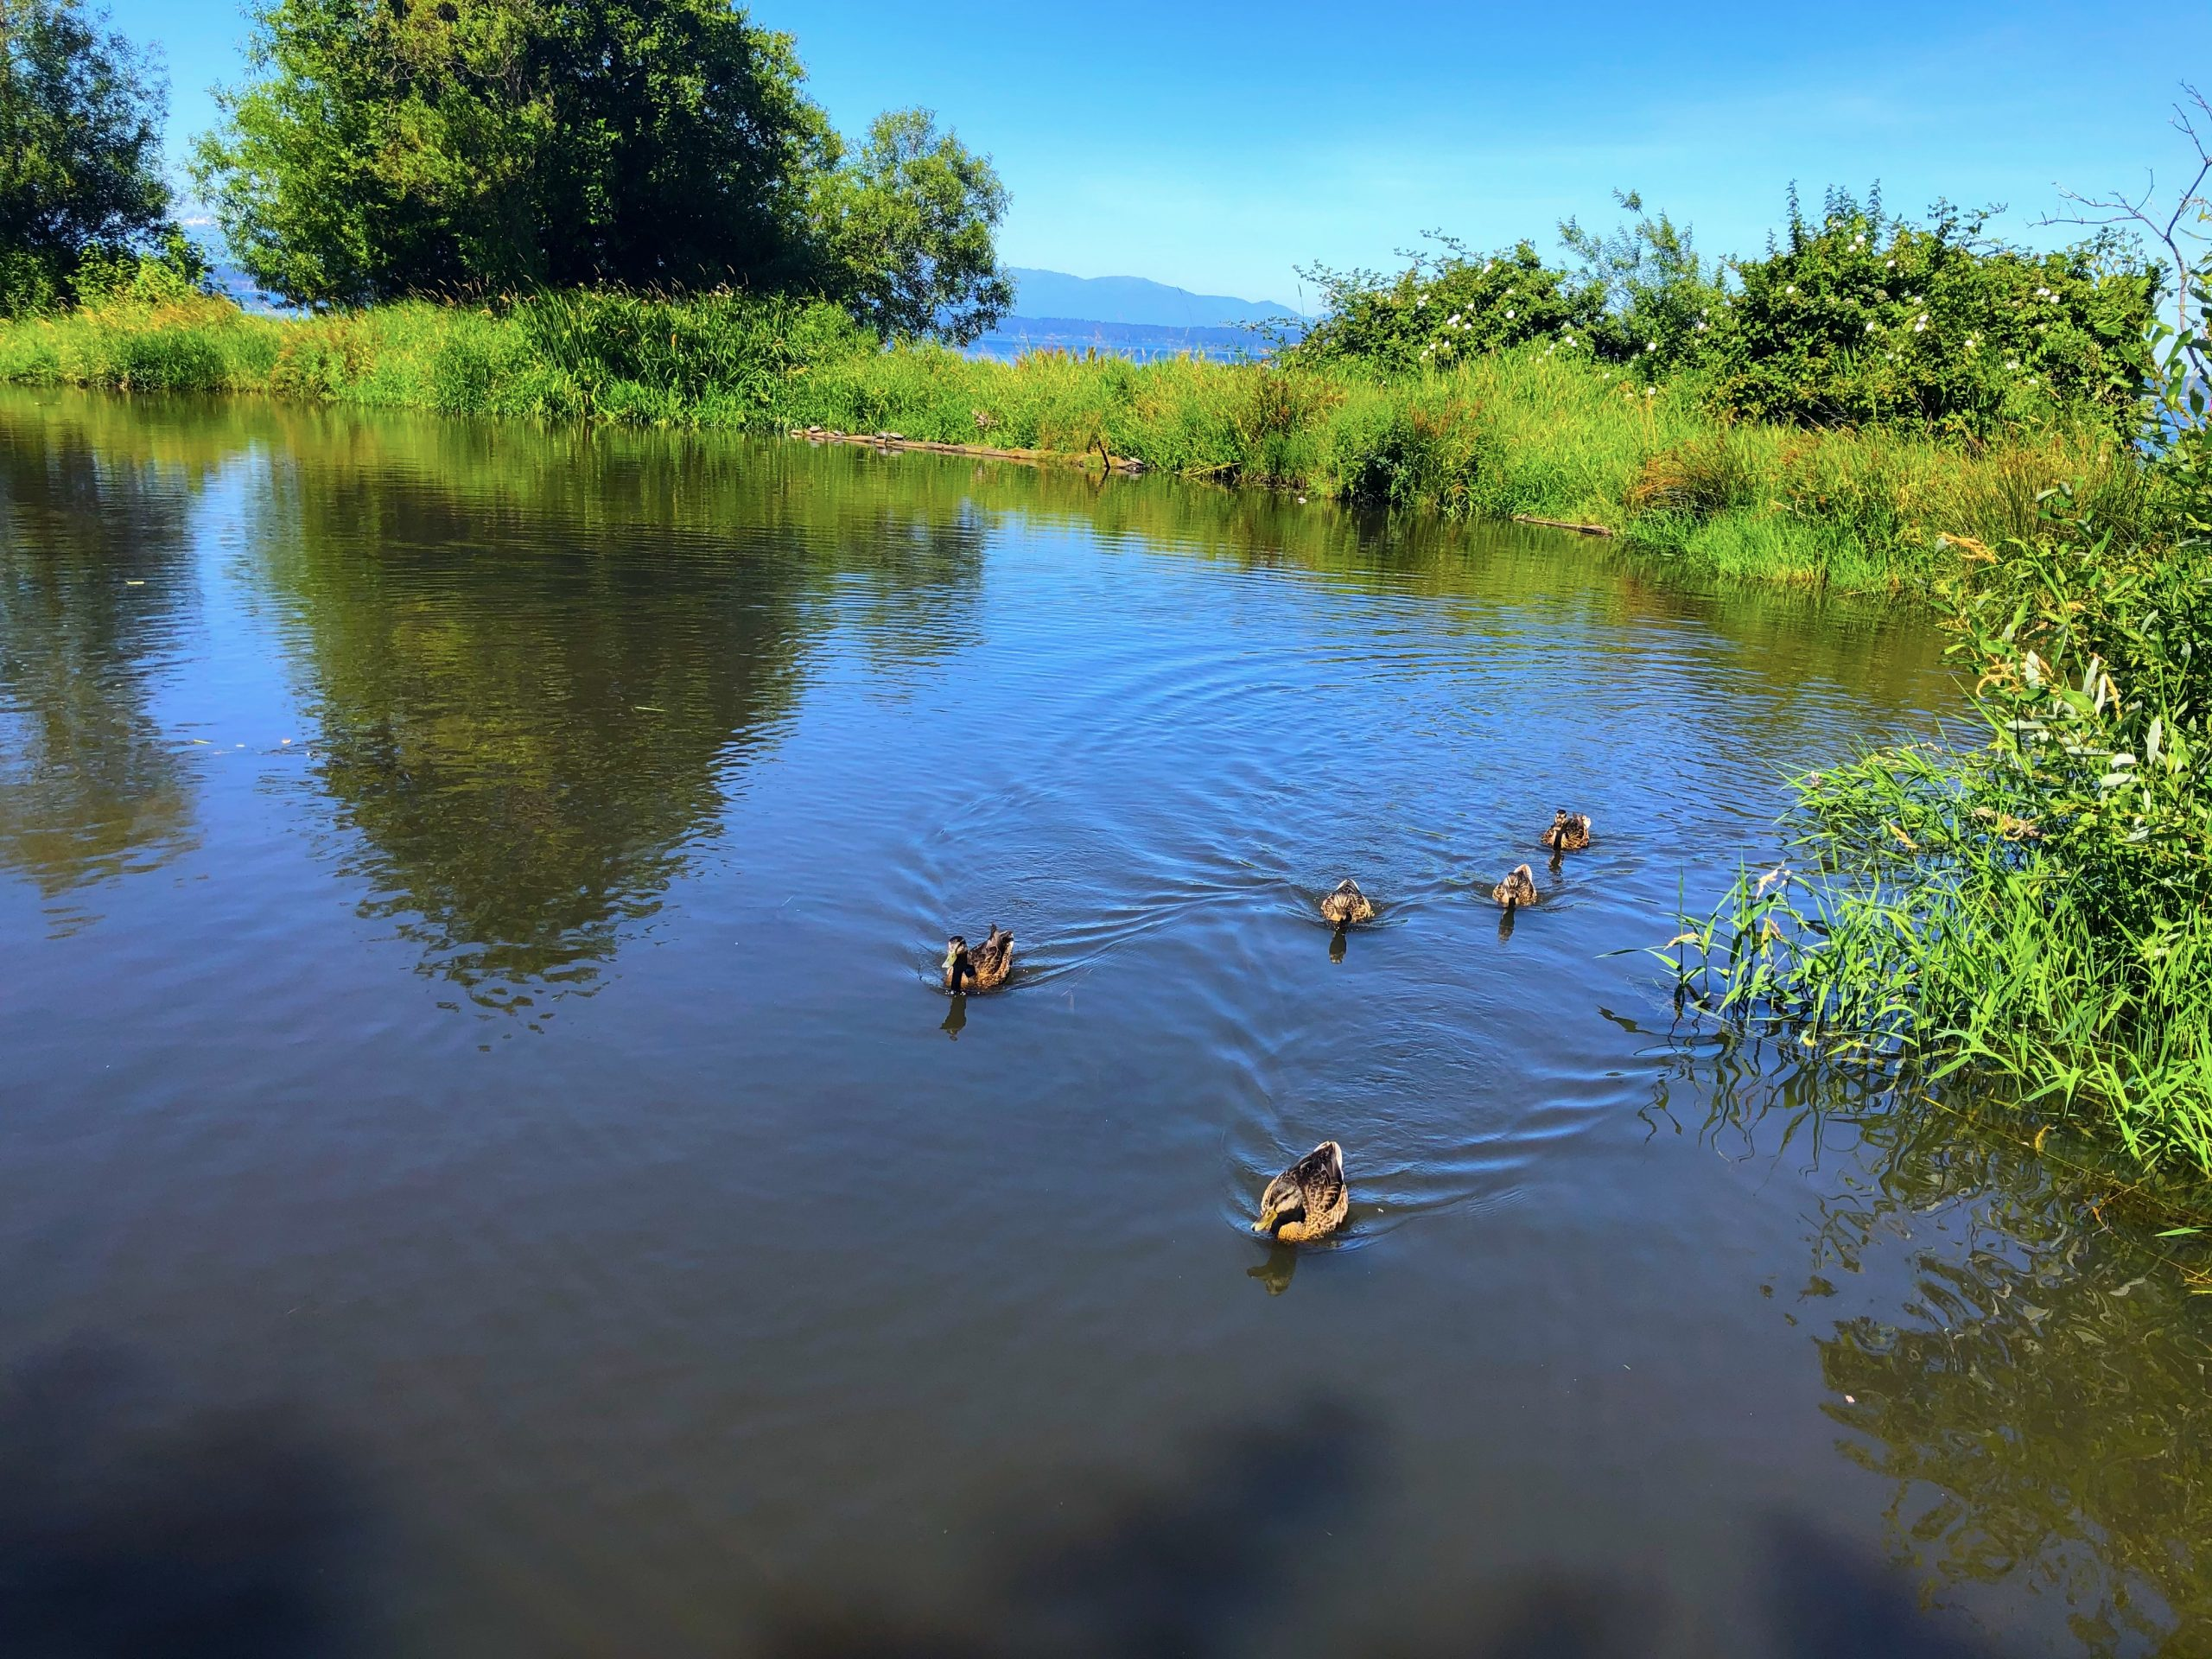 photo by jmz. An over-saturated photo of a family of ducks swimming in a small pond. The pond is surrounded by lush greenery, grasses, bushes, and small trees.